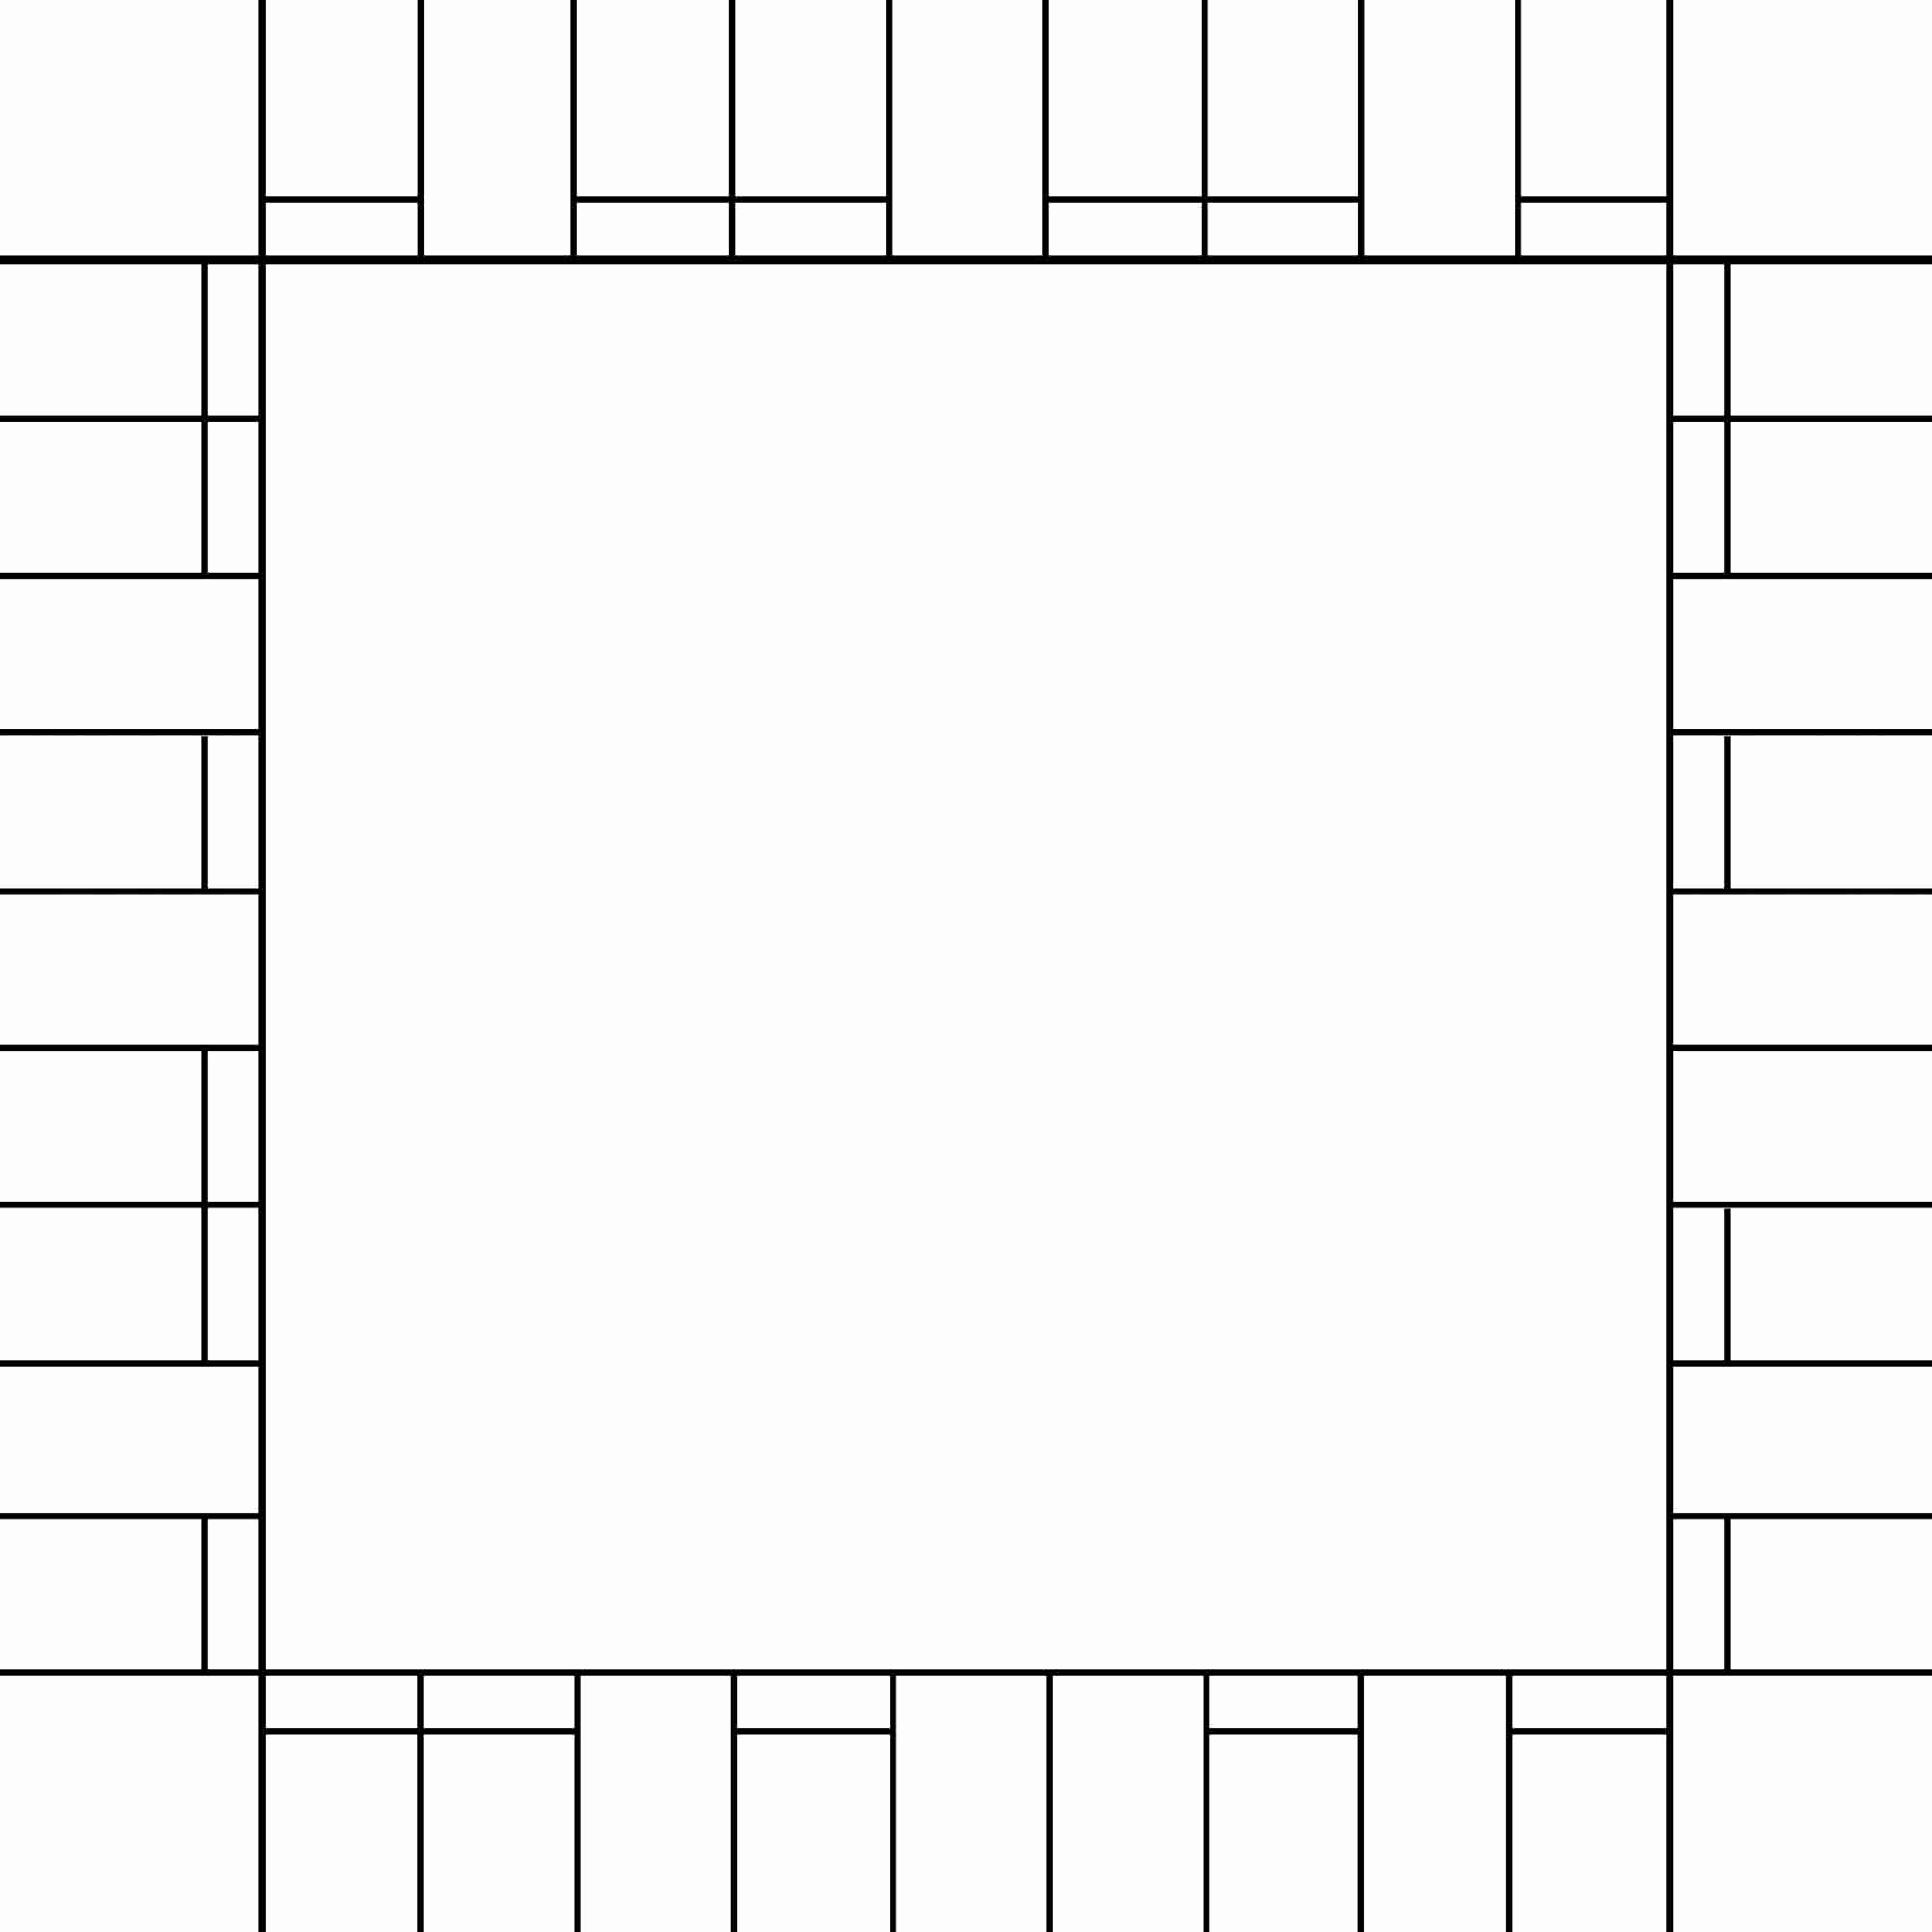 Monopoly Game Template New Free Printable Blank Monopoly Game